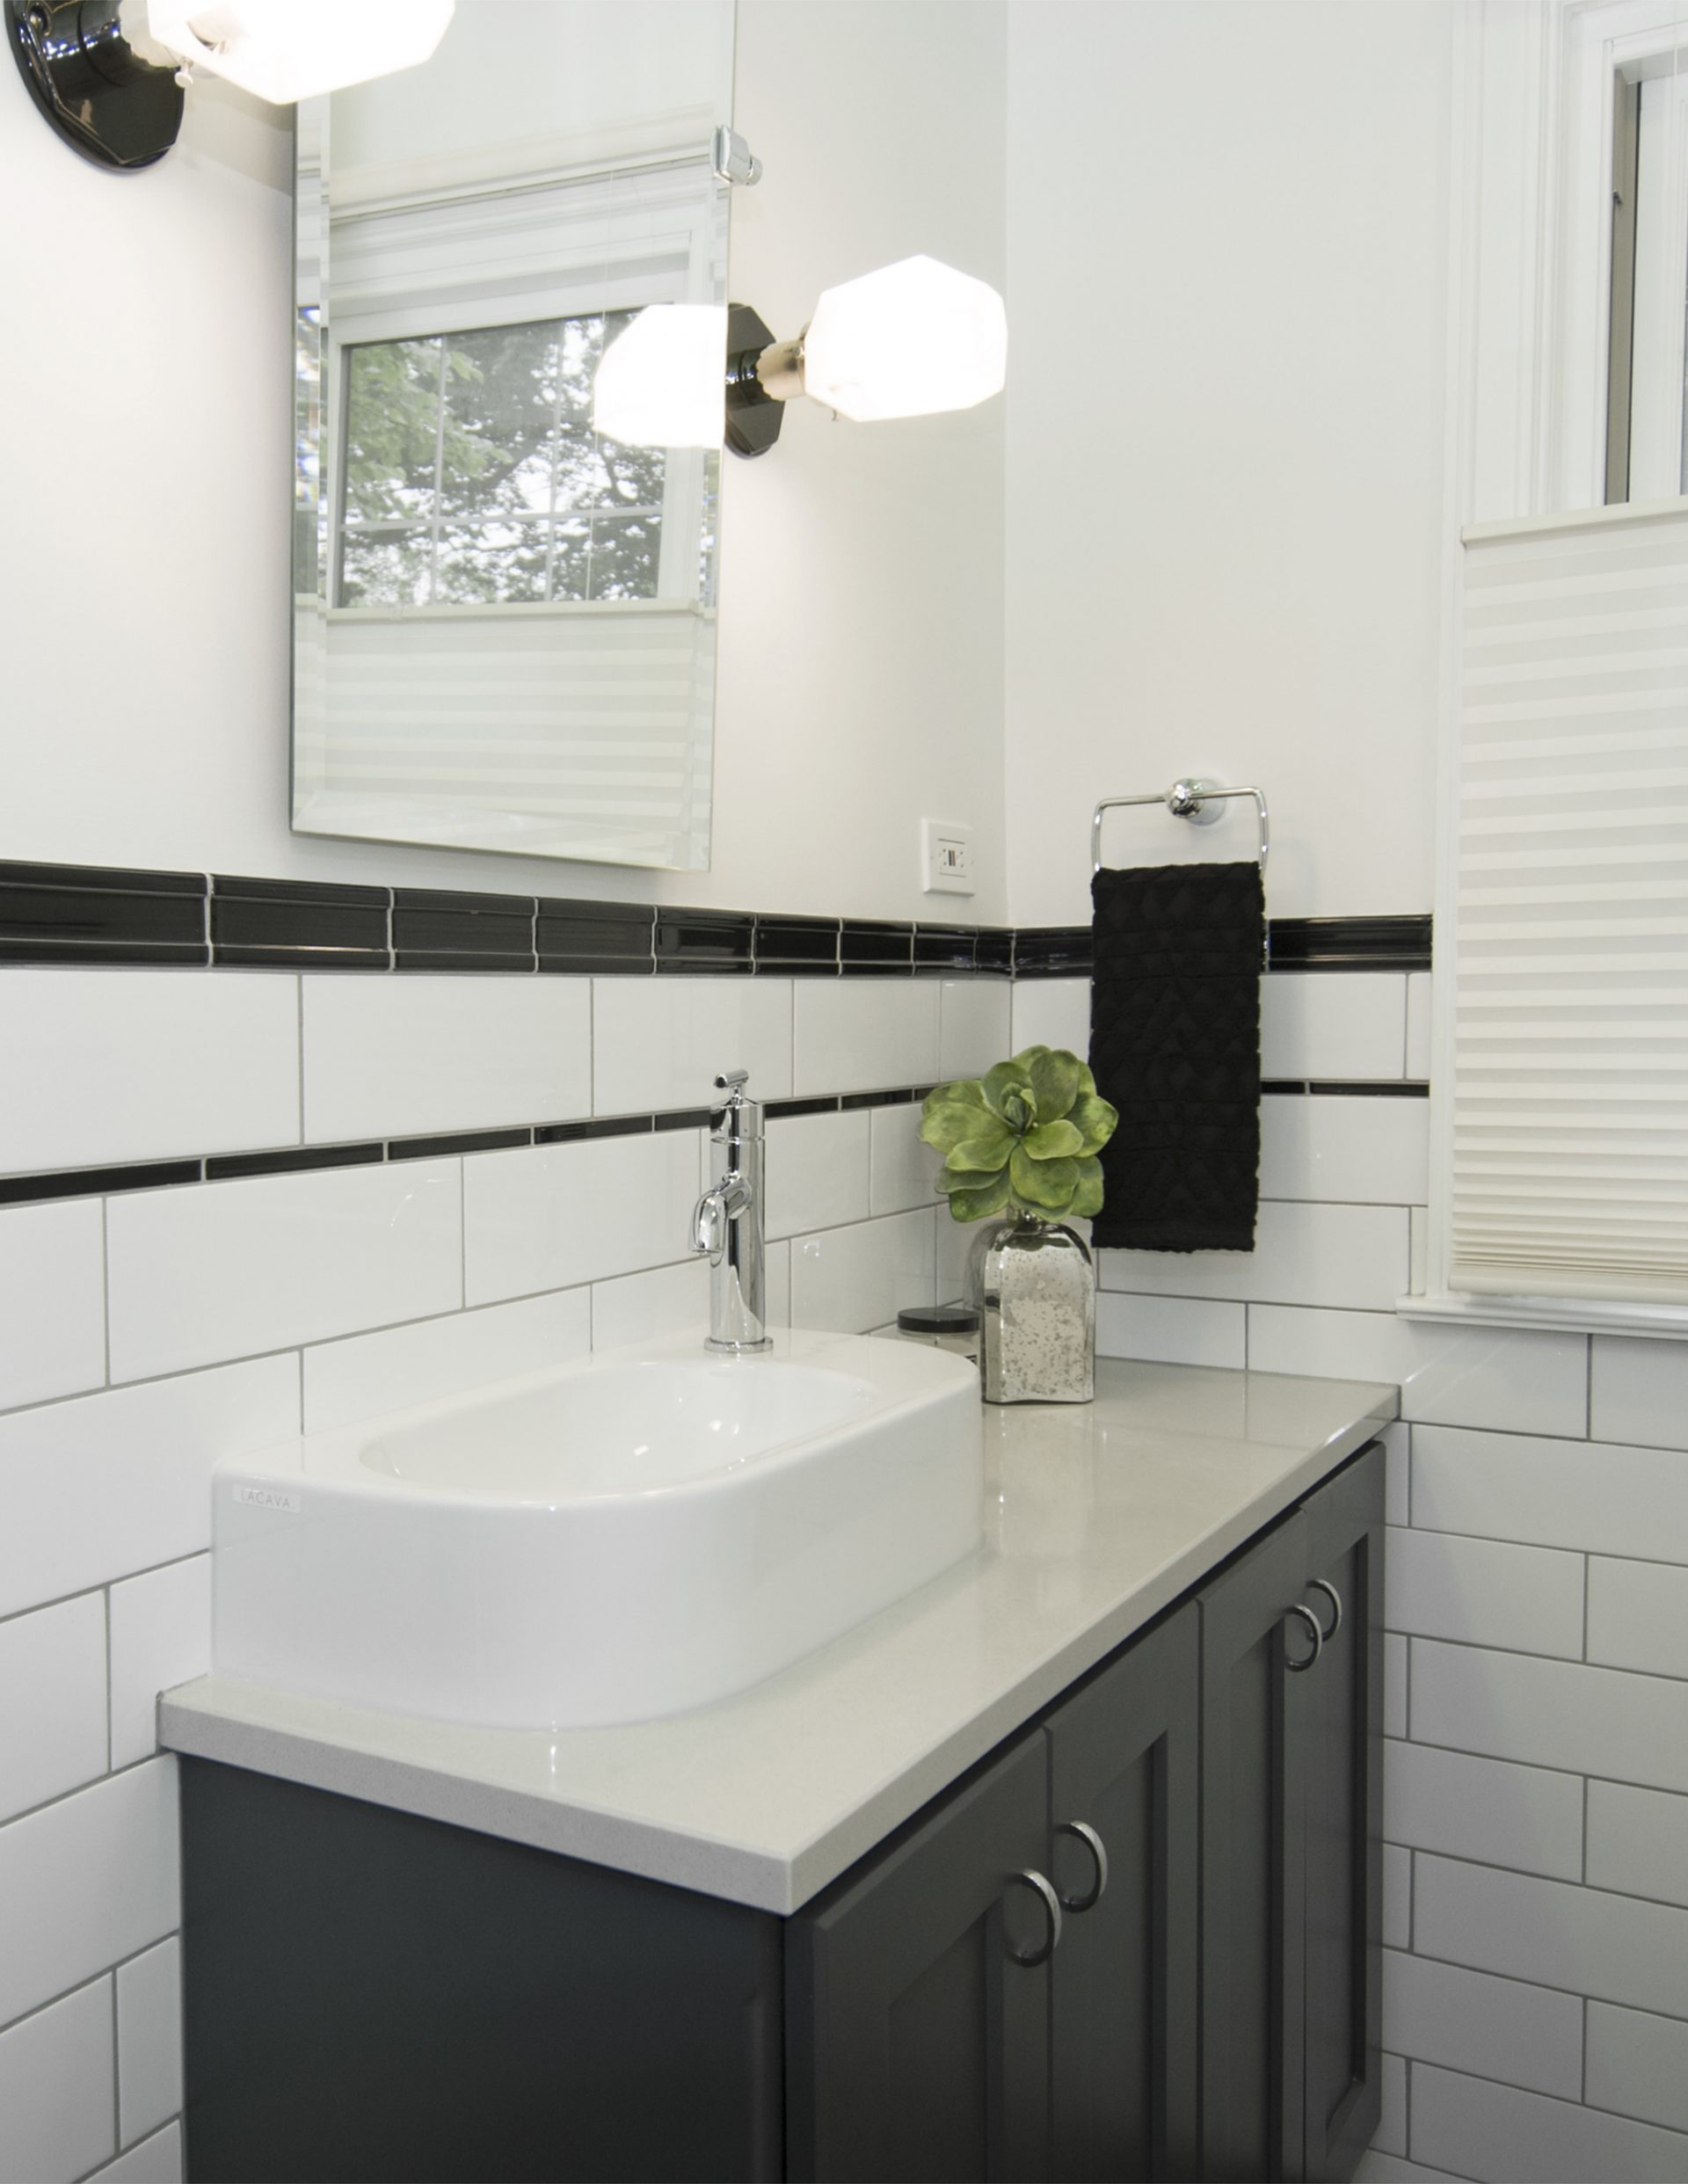 Bath, clintonville, Dave Fox,hall, subway tile, white, dark cabinets, black jolly tile